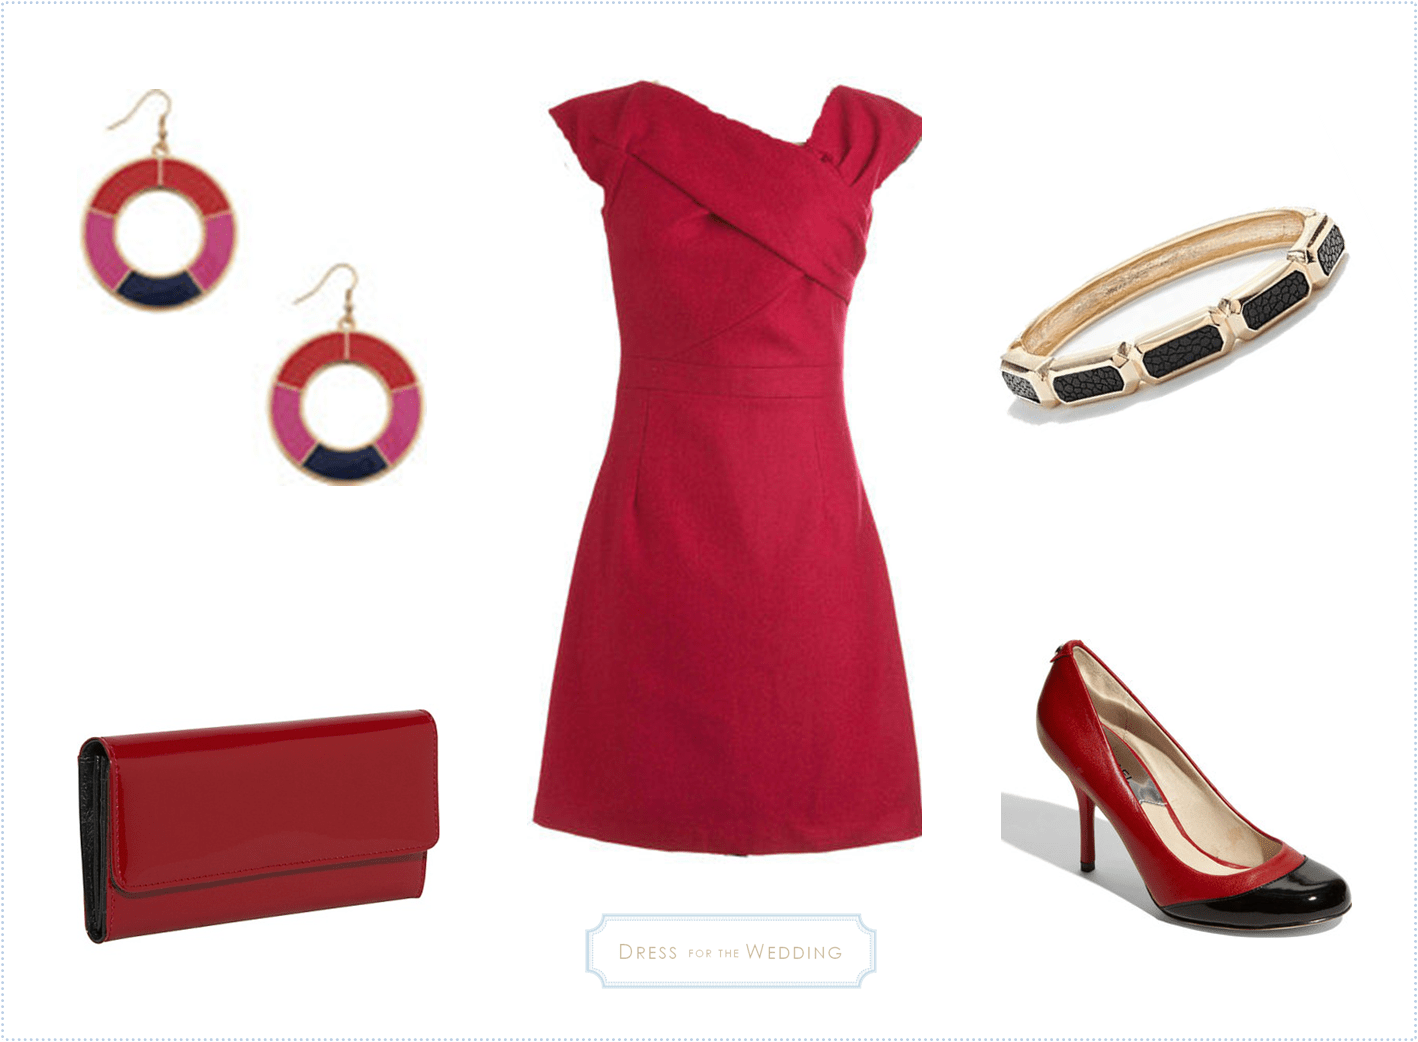 Dress For A Fall Wedding Guest Red Dress with Black